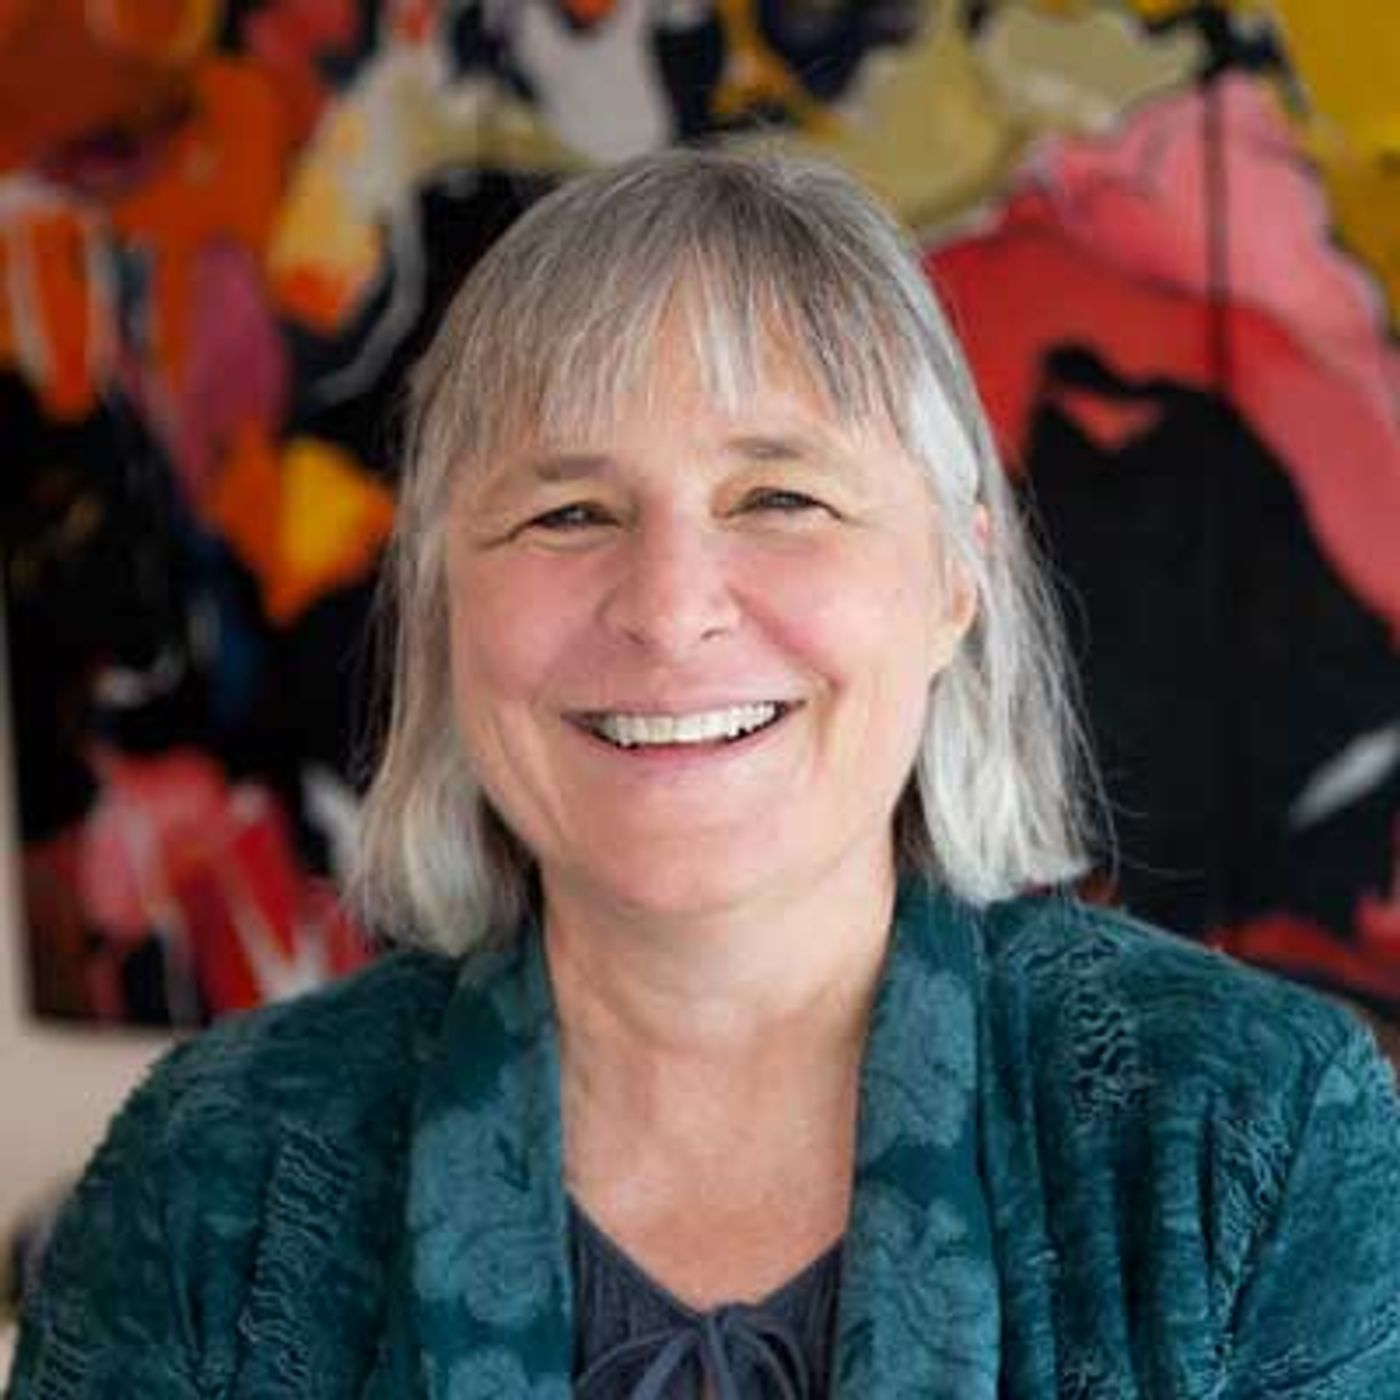 A conversation with Certified Nonviolent Communication Trainer Sarah Peyton.